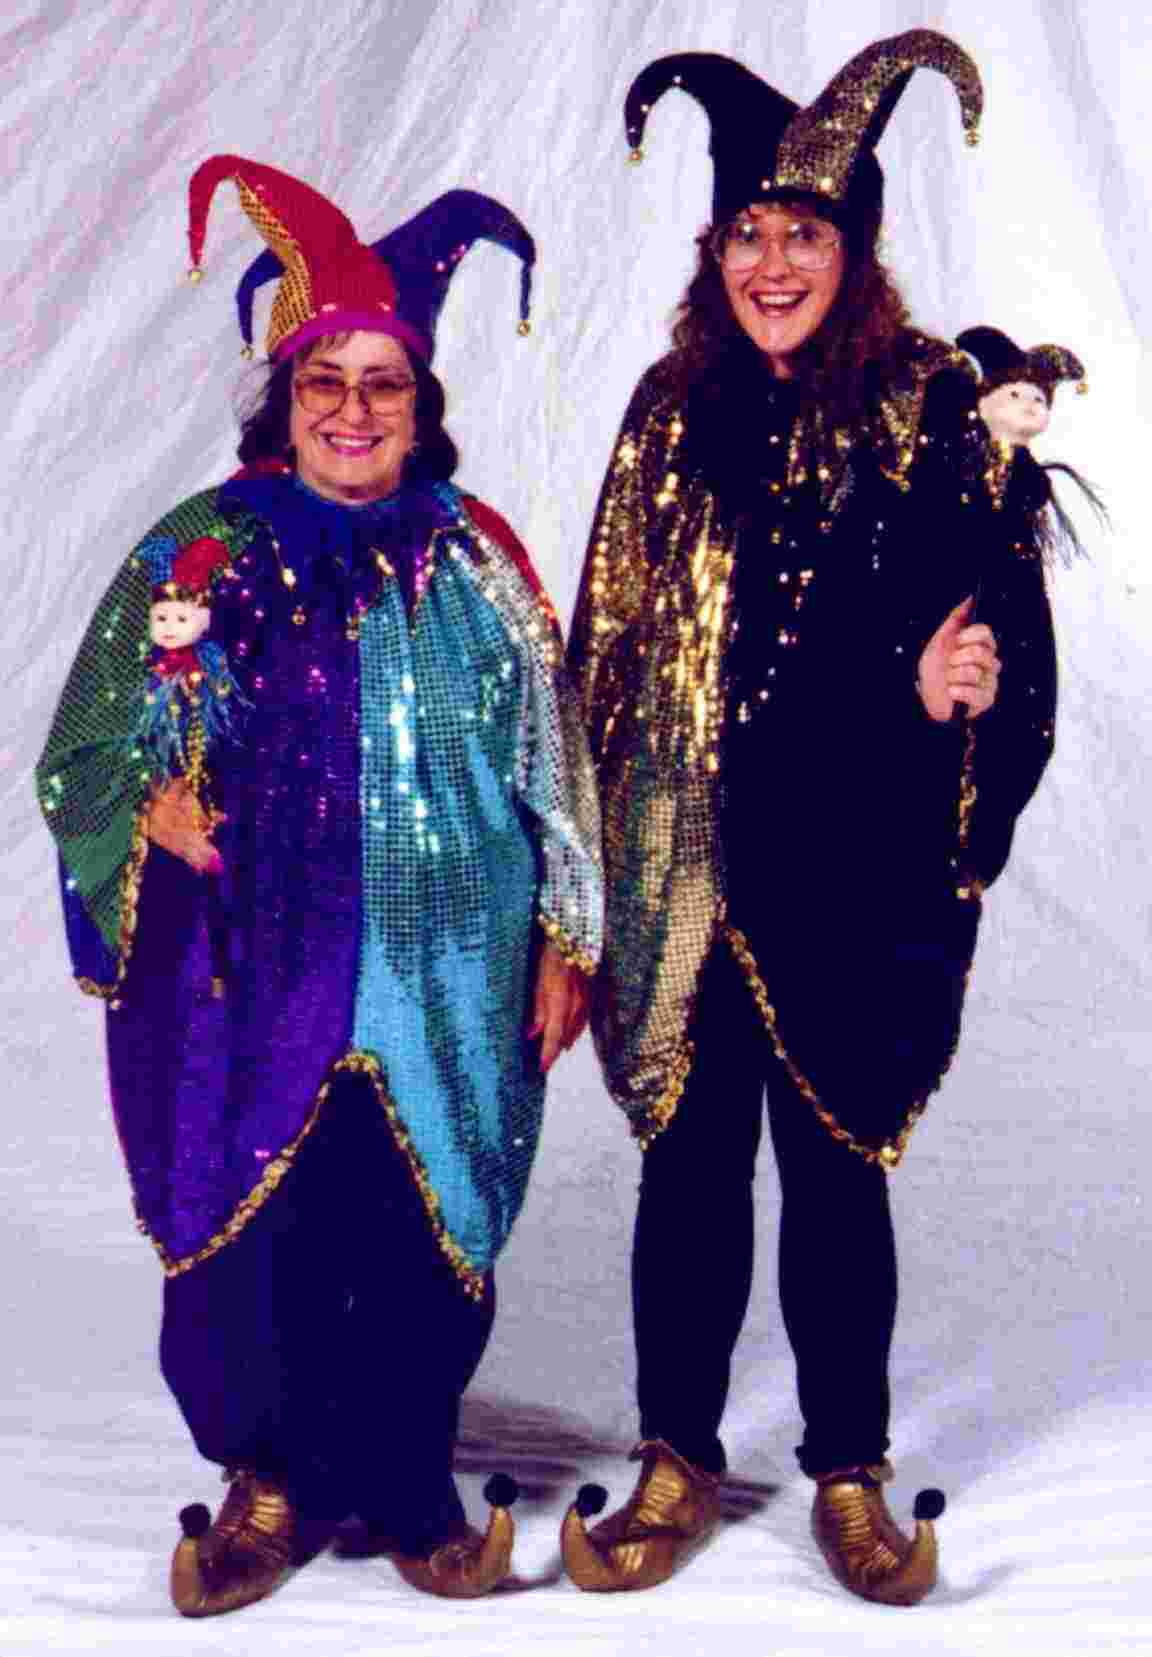 Costume World's owner Sue (right), and her mother, Marjorie, at the 1997 National Costumers Association Convention in Las Vegas.